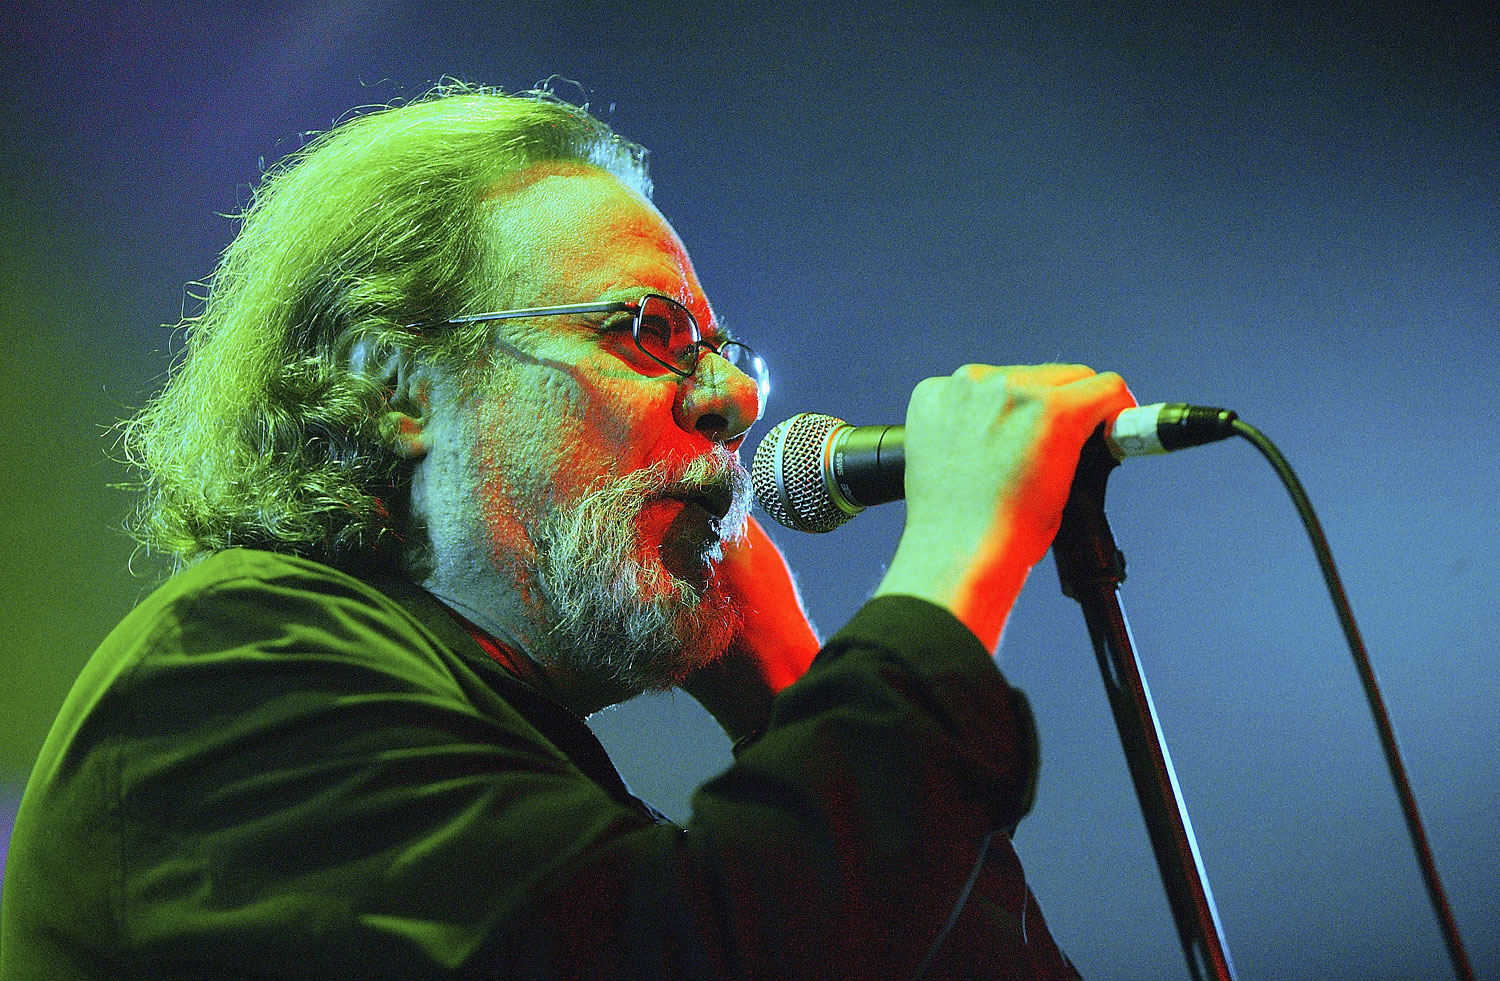 Tommy Ramone performs on stage during The Ramones Cancer Benefit at Spirit on Oct. 8, 2004 in New York City.